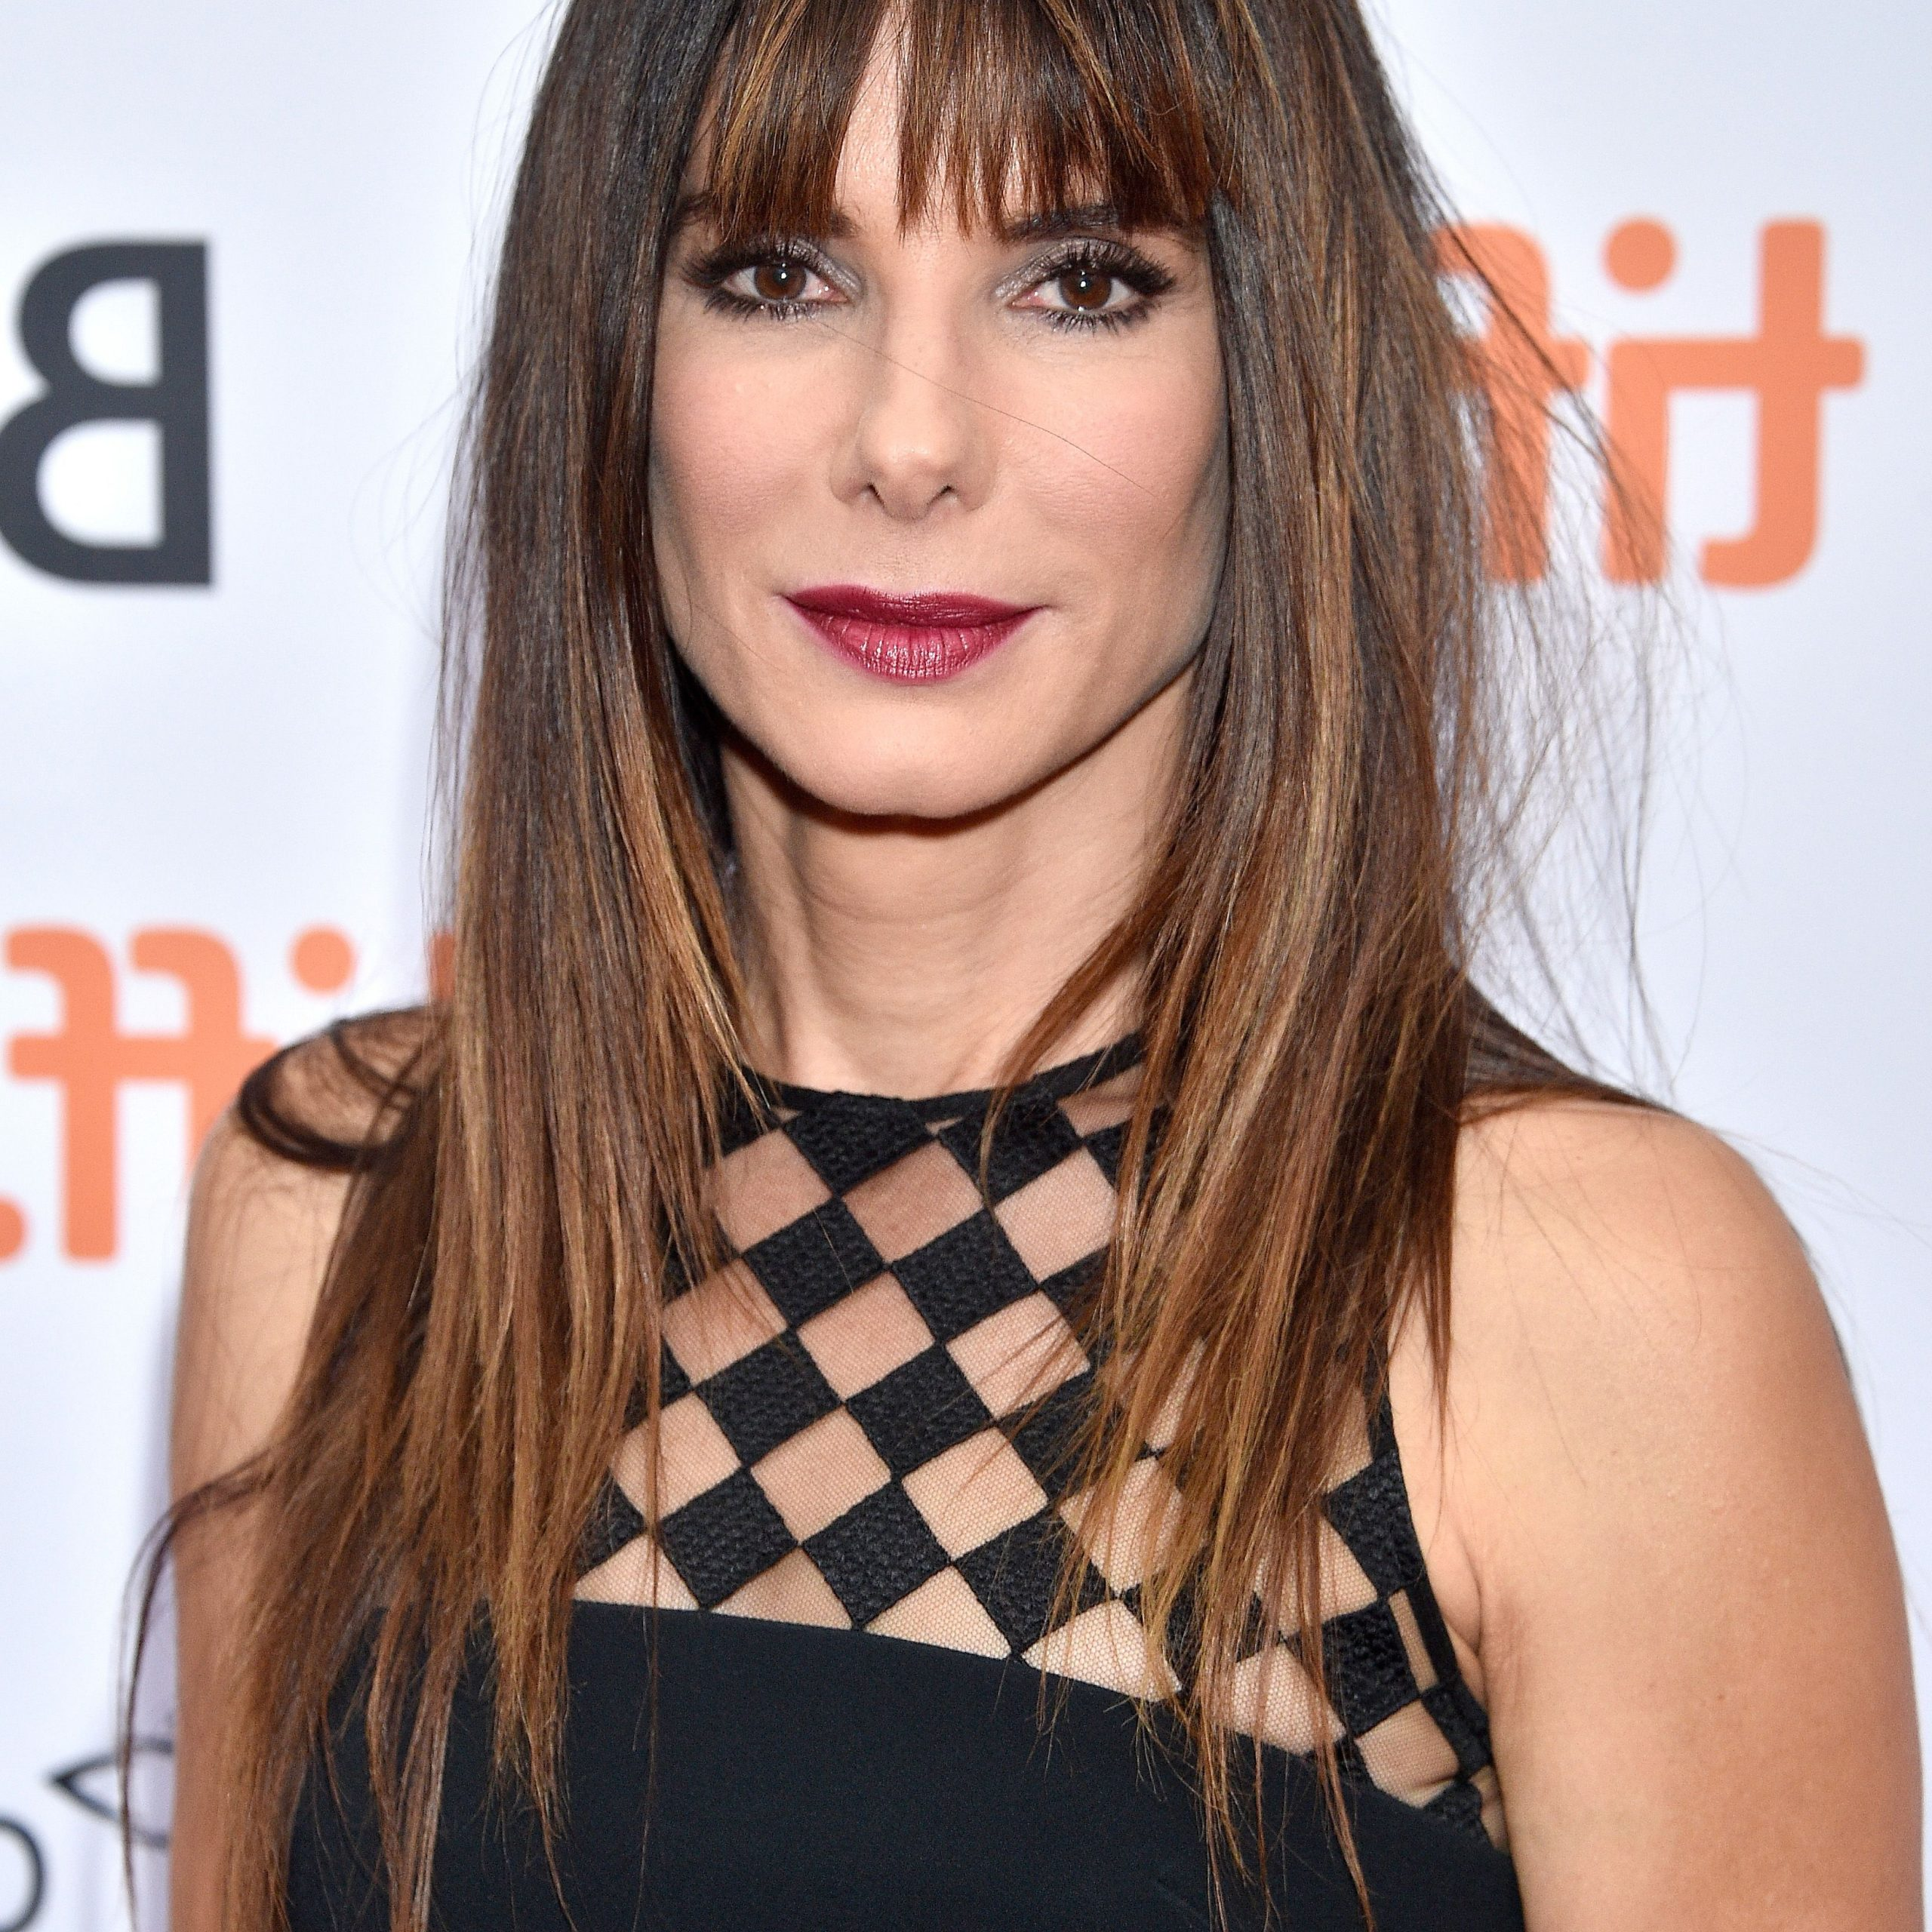 Fashionable Medium To Long Choppy Haircuts With Bangs In 53 Best Layered Haircuts, Hairstyles & Trends For (View 10 of 20)